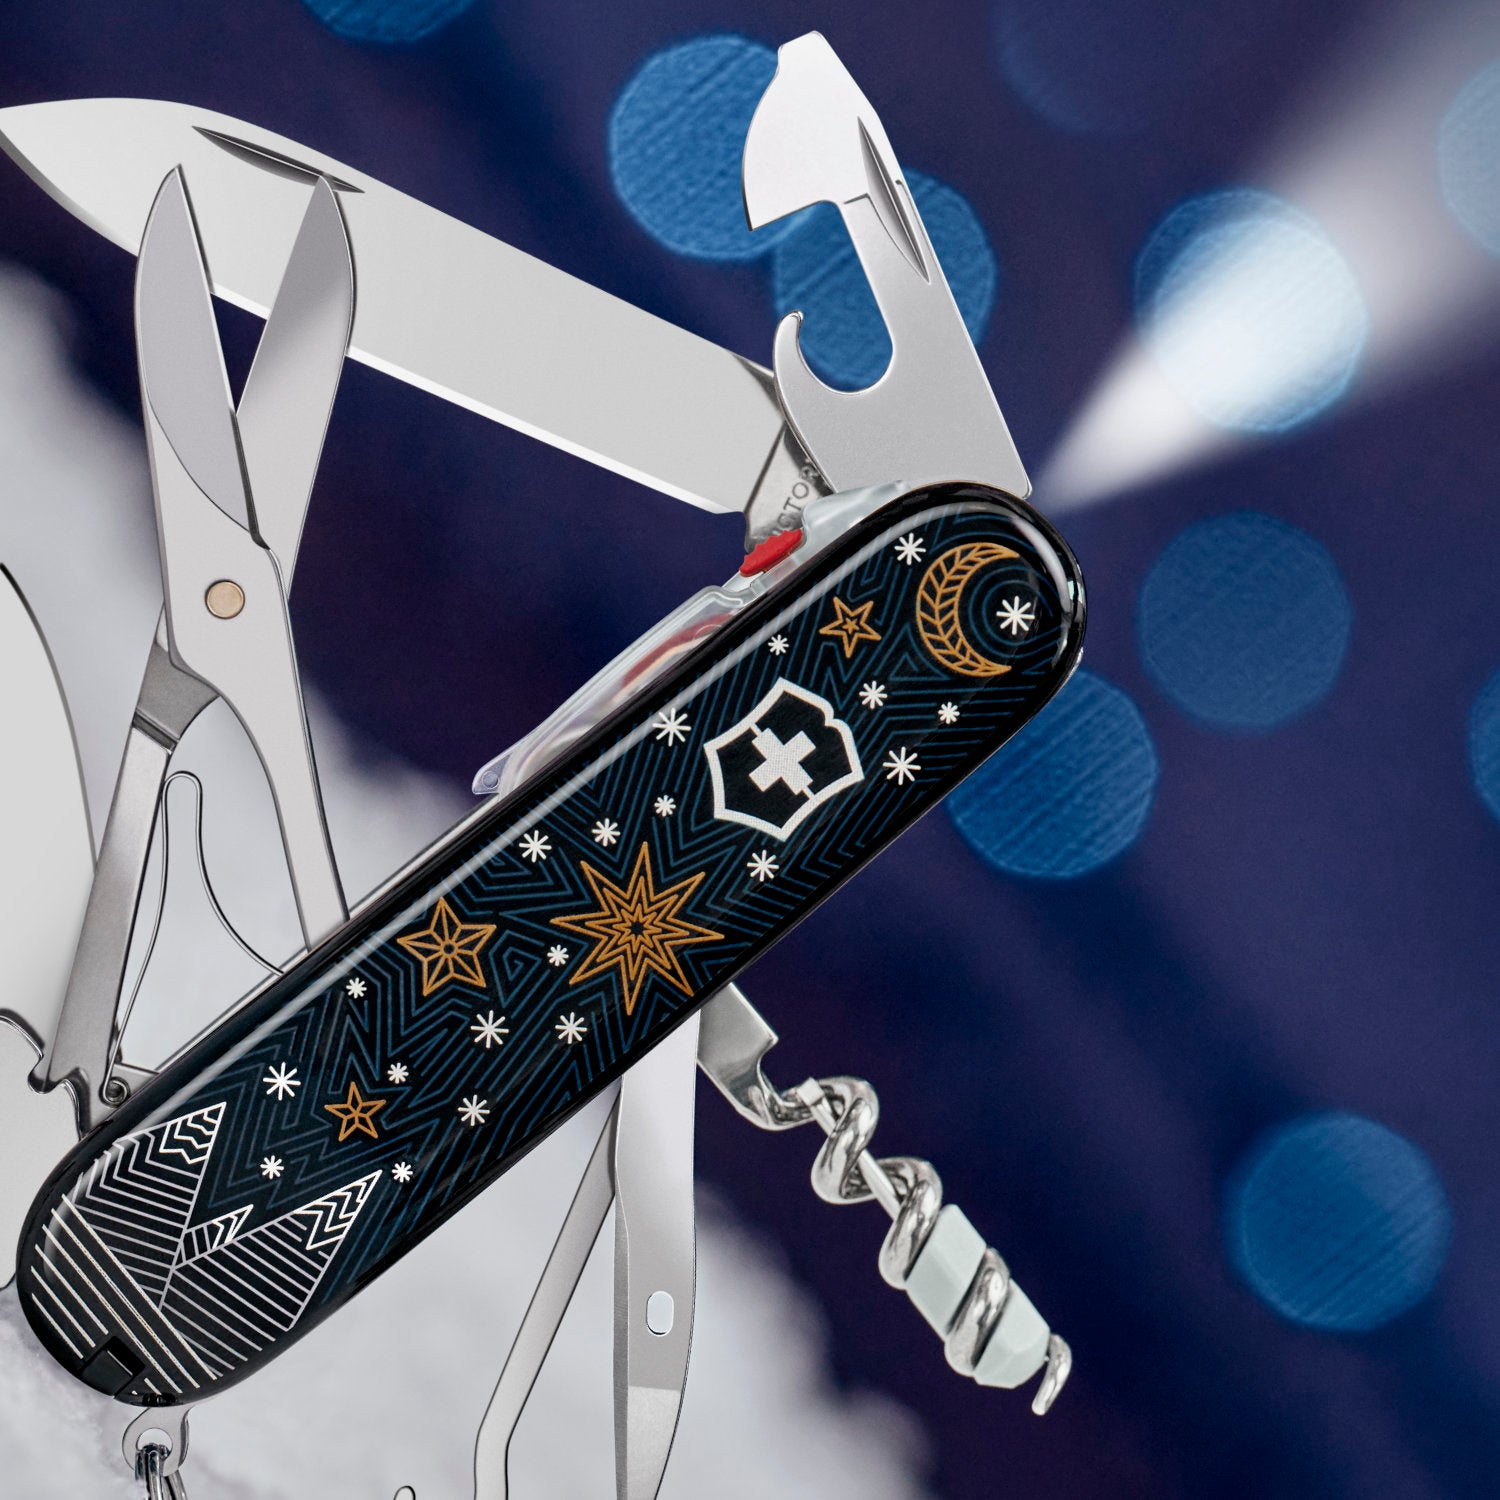 Limited Edition Swiss Army Knives by Victorinox at Swiss Knife Shop